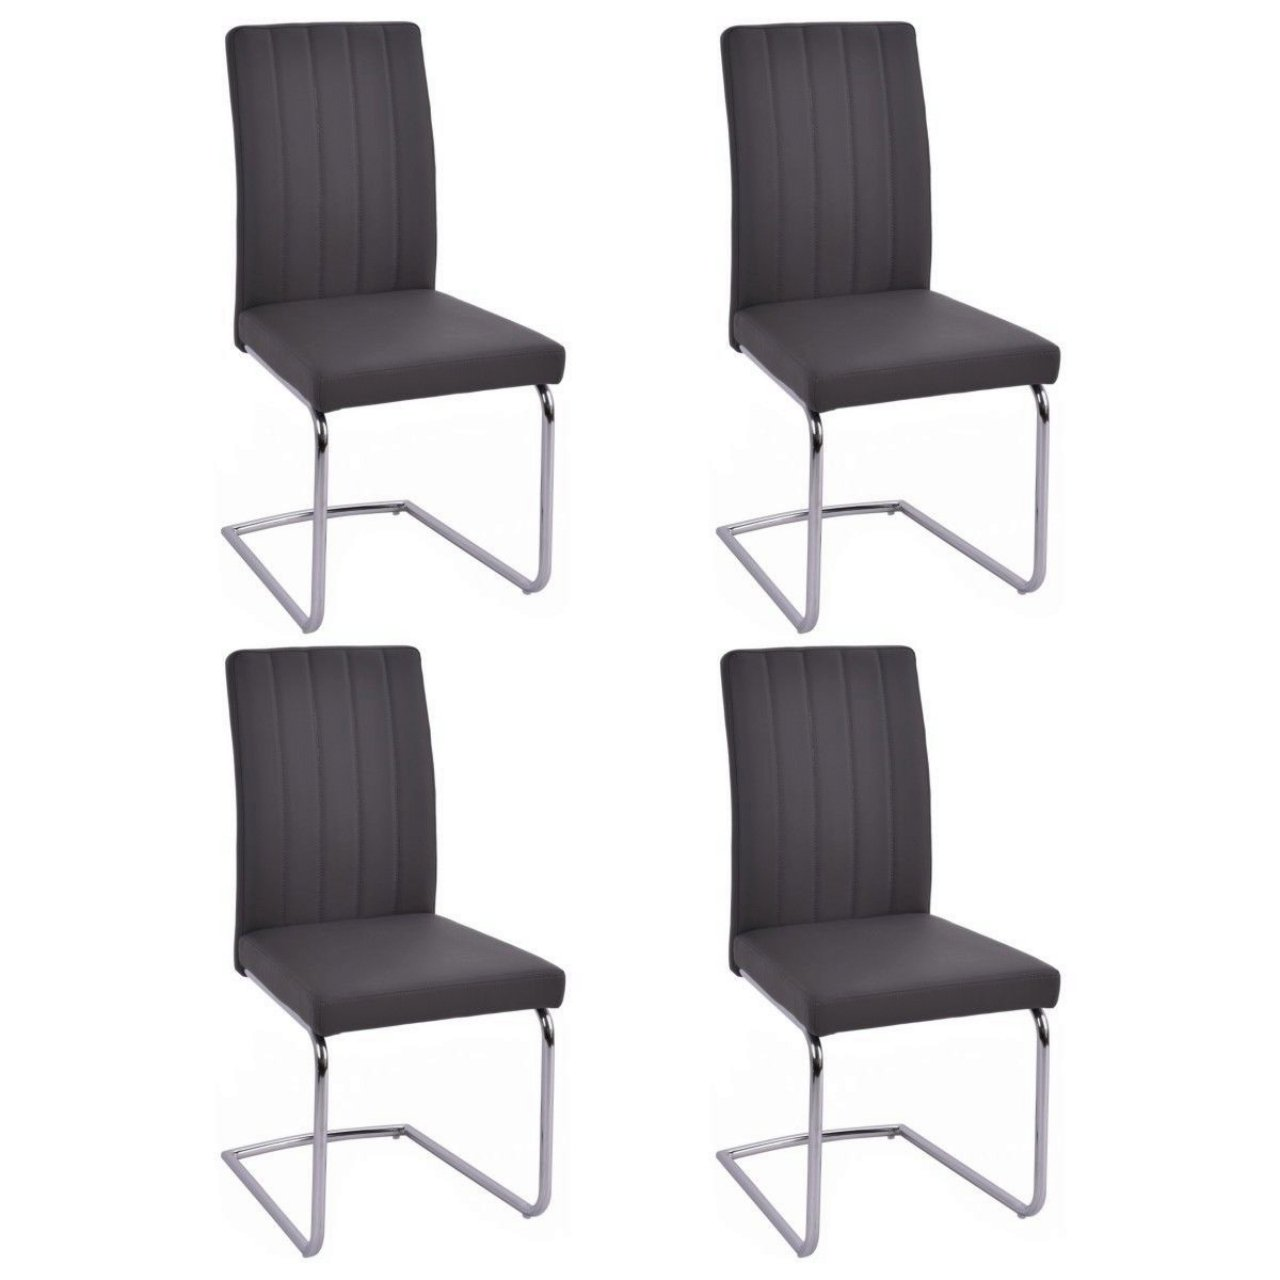 Elegant Dining Chairs High Back Elegant Design Durable PU Leather Home Office Furniture Grey - Set of 4 #1003